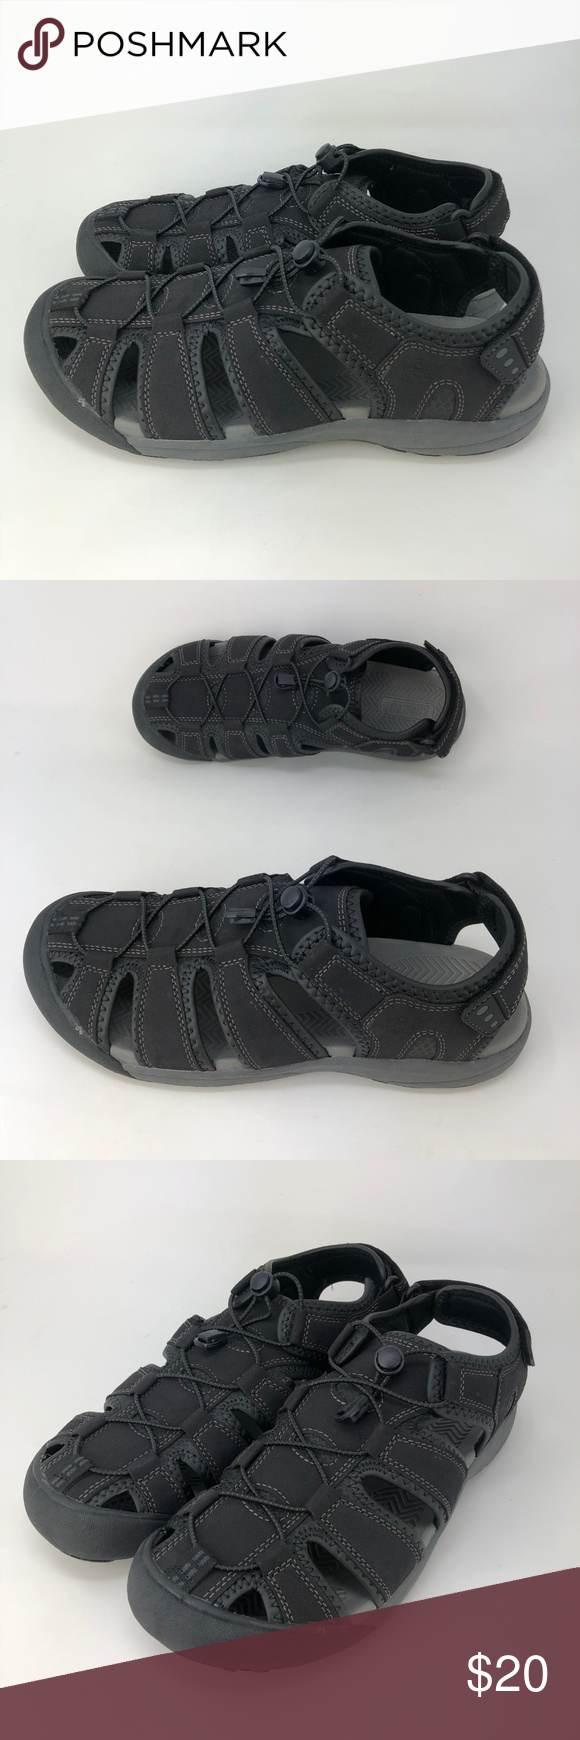 df0e1b1656ba Khombu Travis Men s Active Sandals Black Size 9-11 NEW Khombu Travis Men s  Active Adjustable